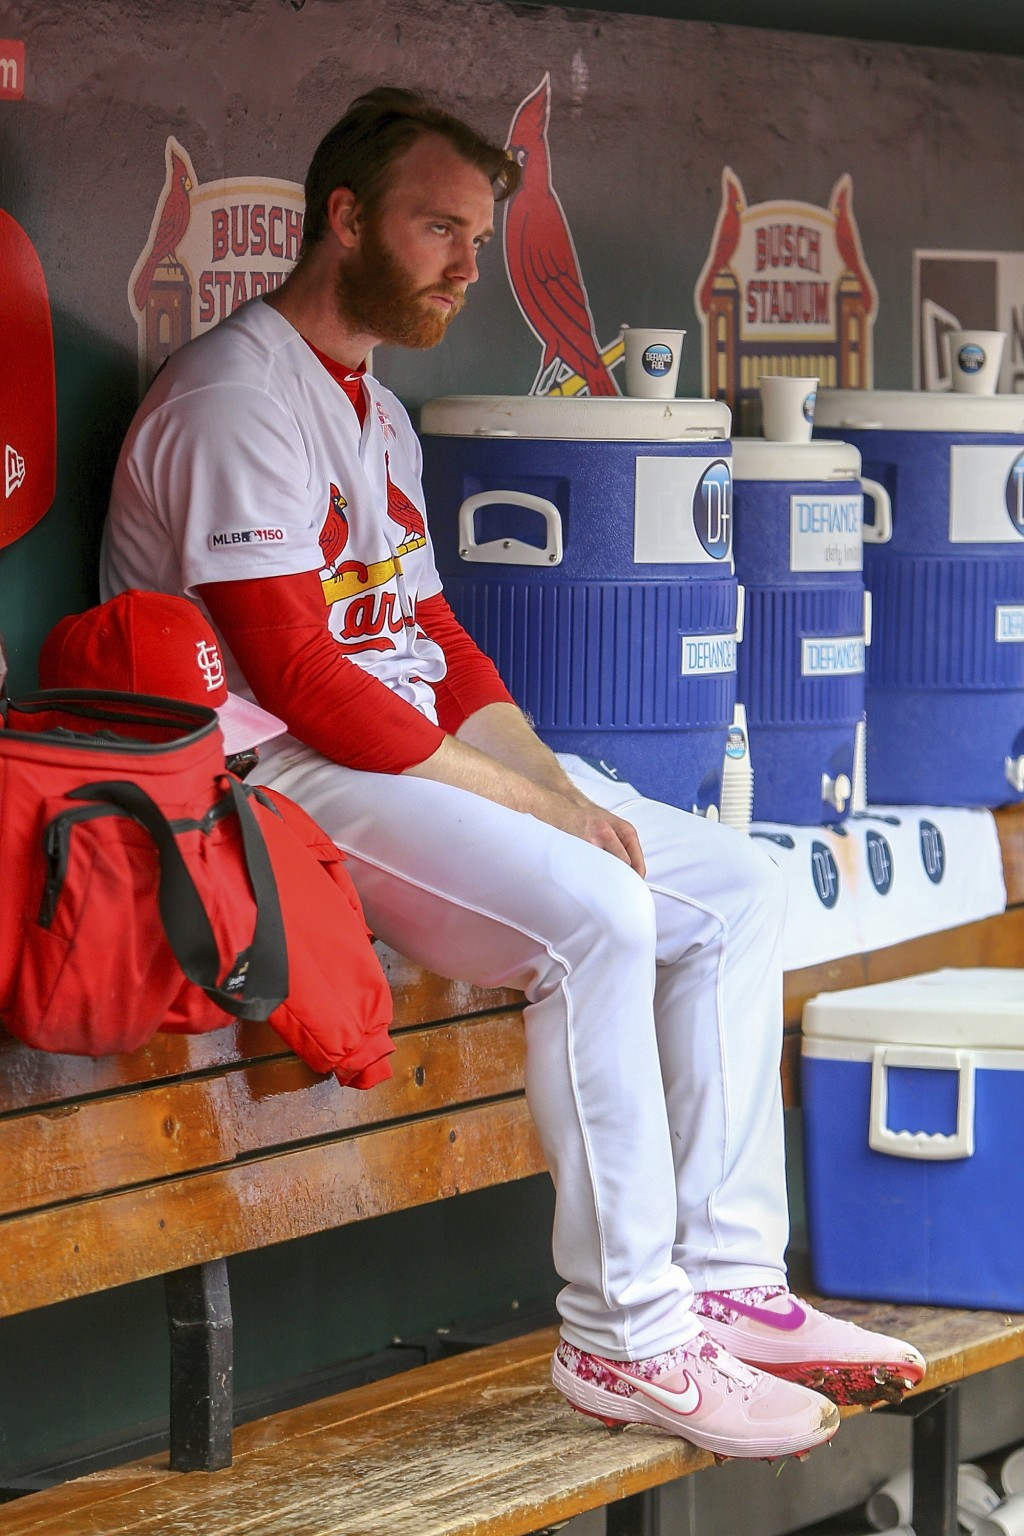 St. Louis Cardinals relief pitcher John Brebbia sits in the dugout during the seventh inning of a baseball game against the Pittsburgh Pirates, Sunday